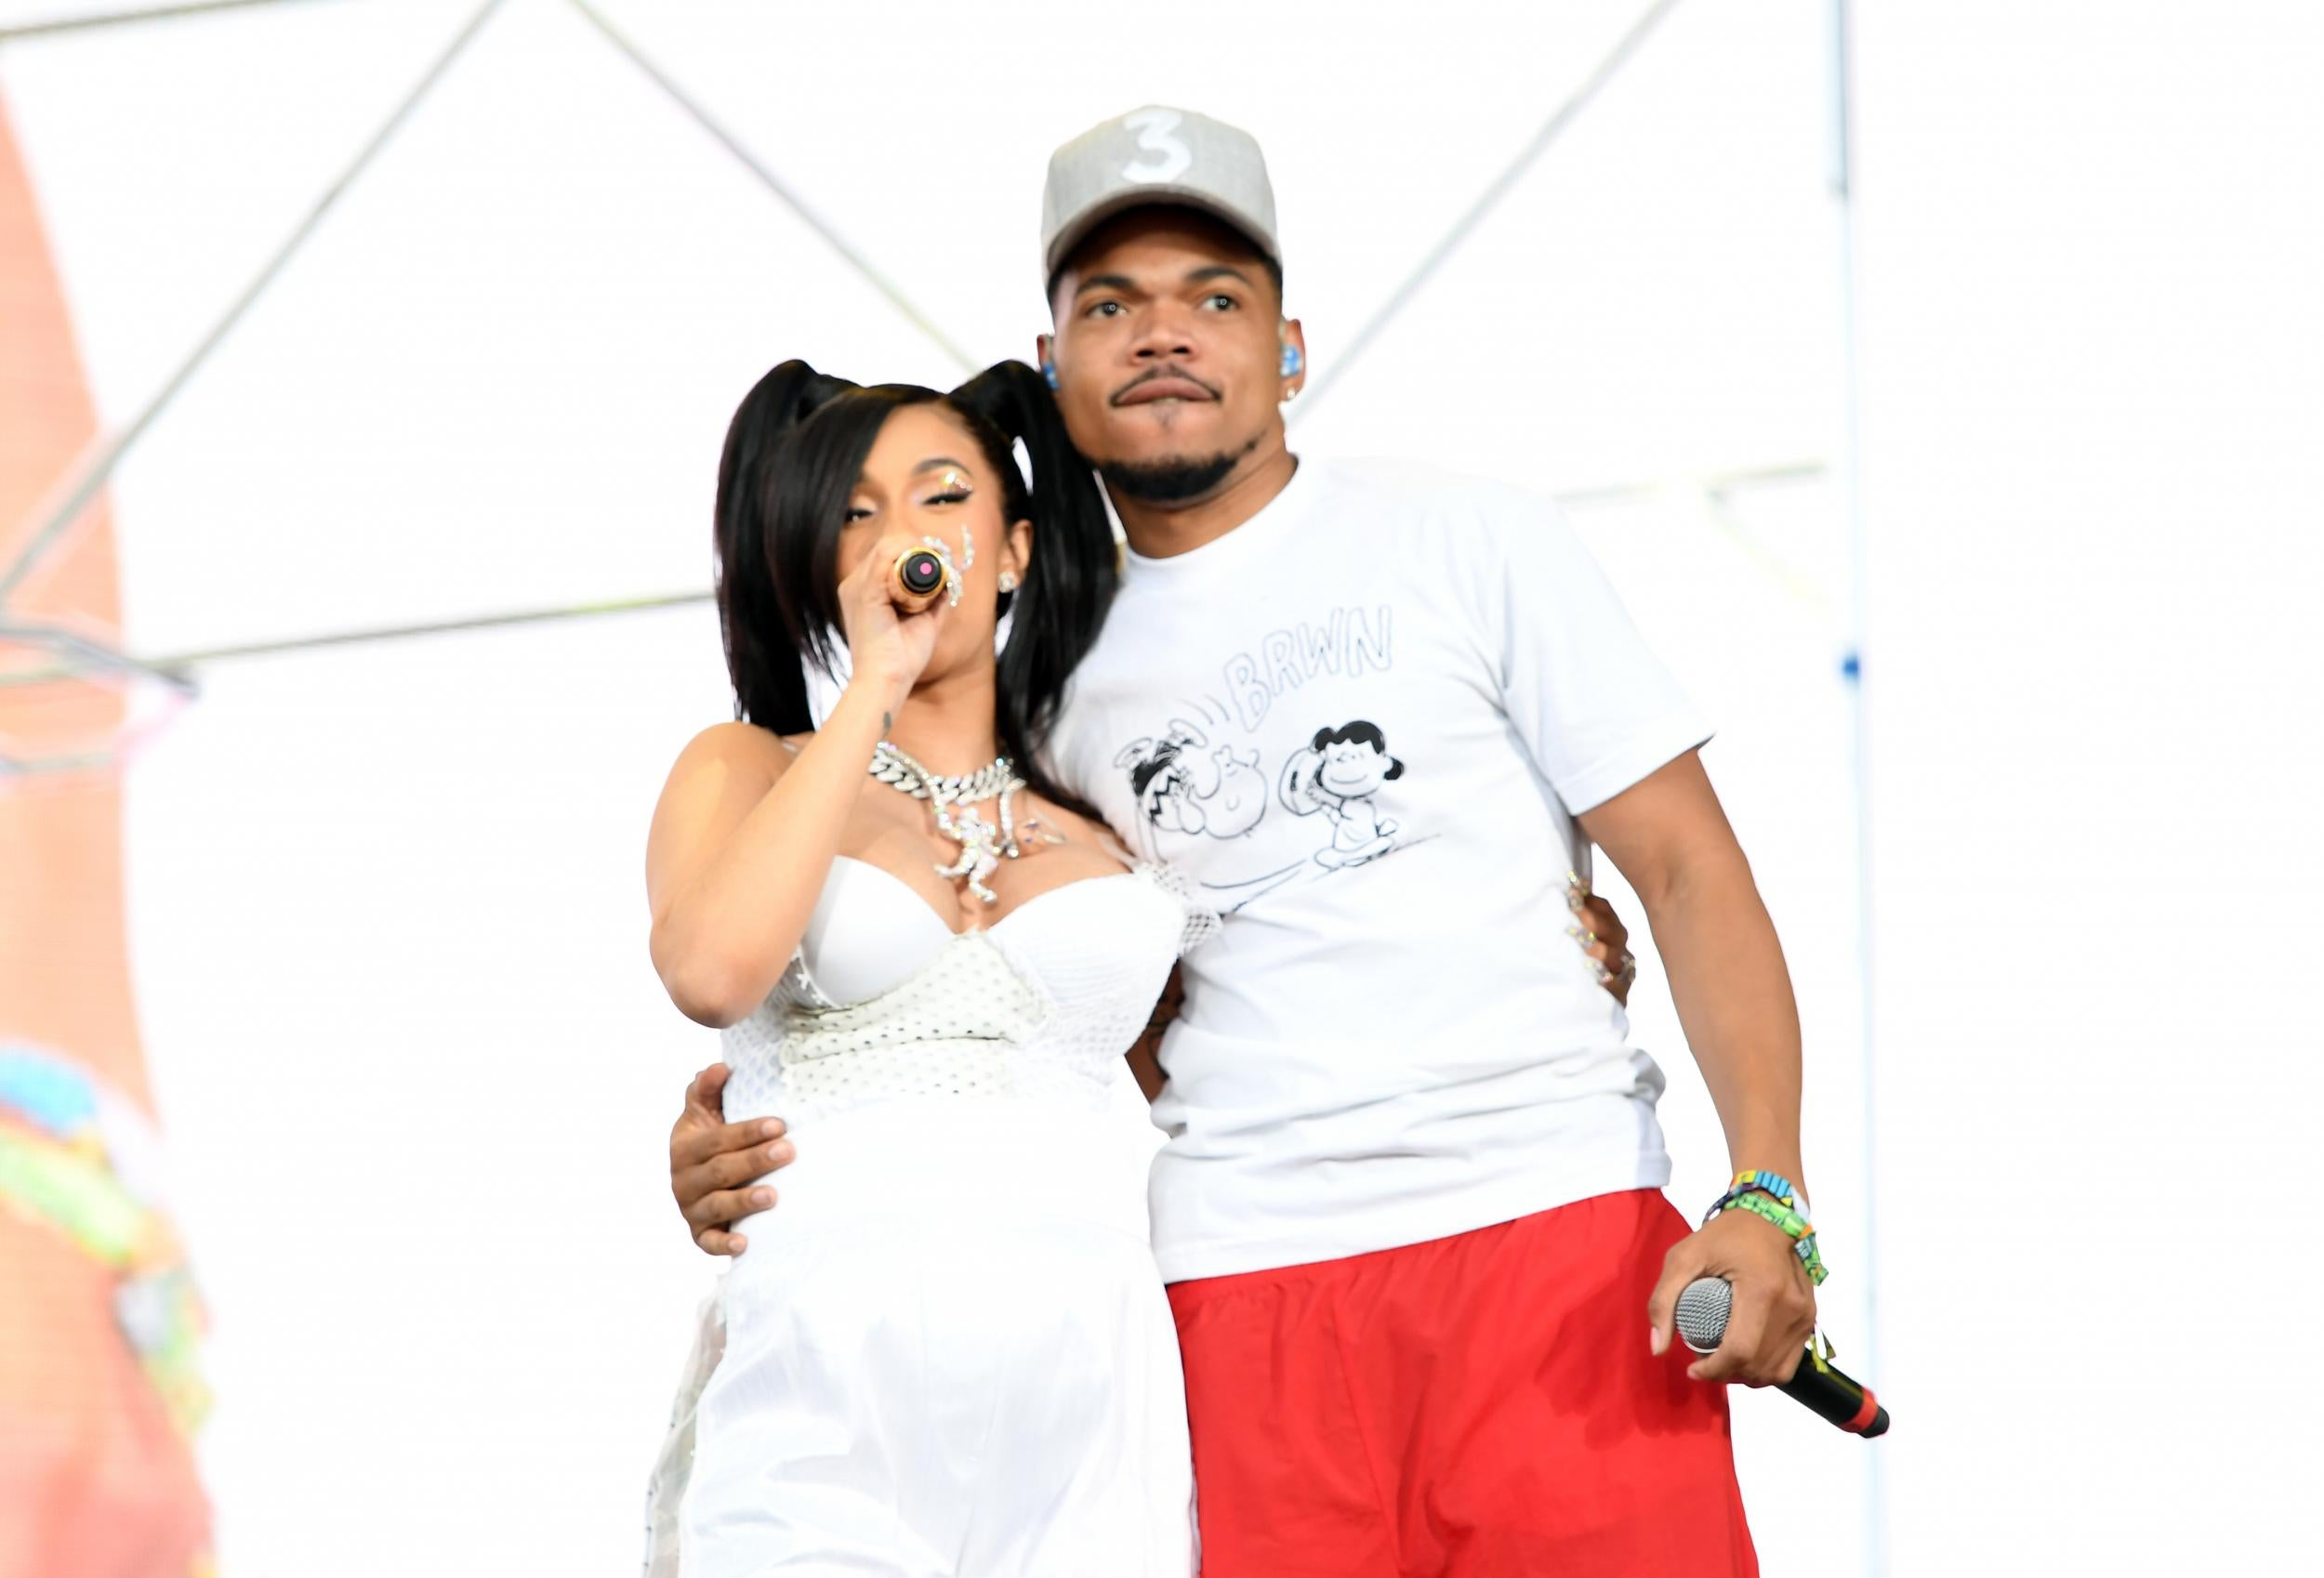 Cardi B Coachella: Coachella 2018: Cardi B Performs With Chance The Rapper